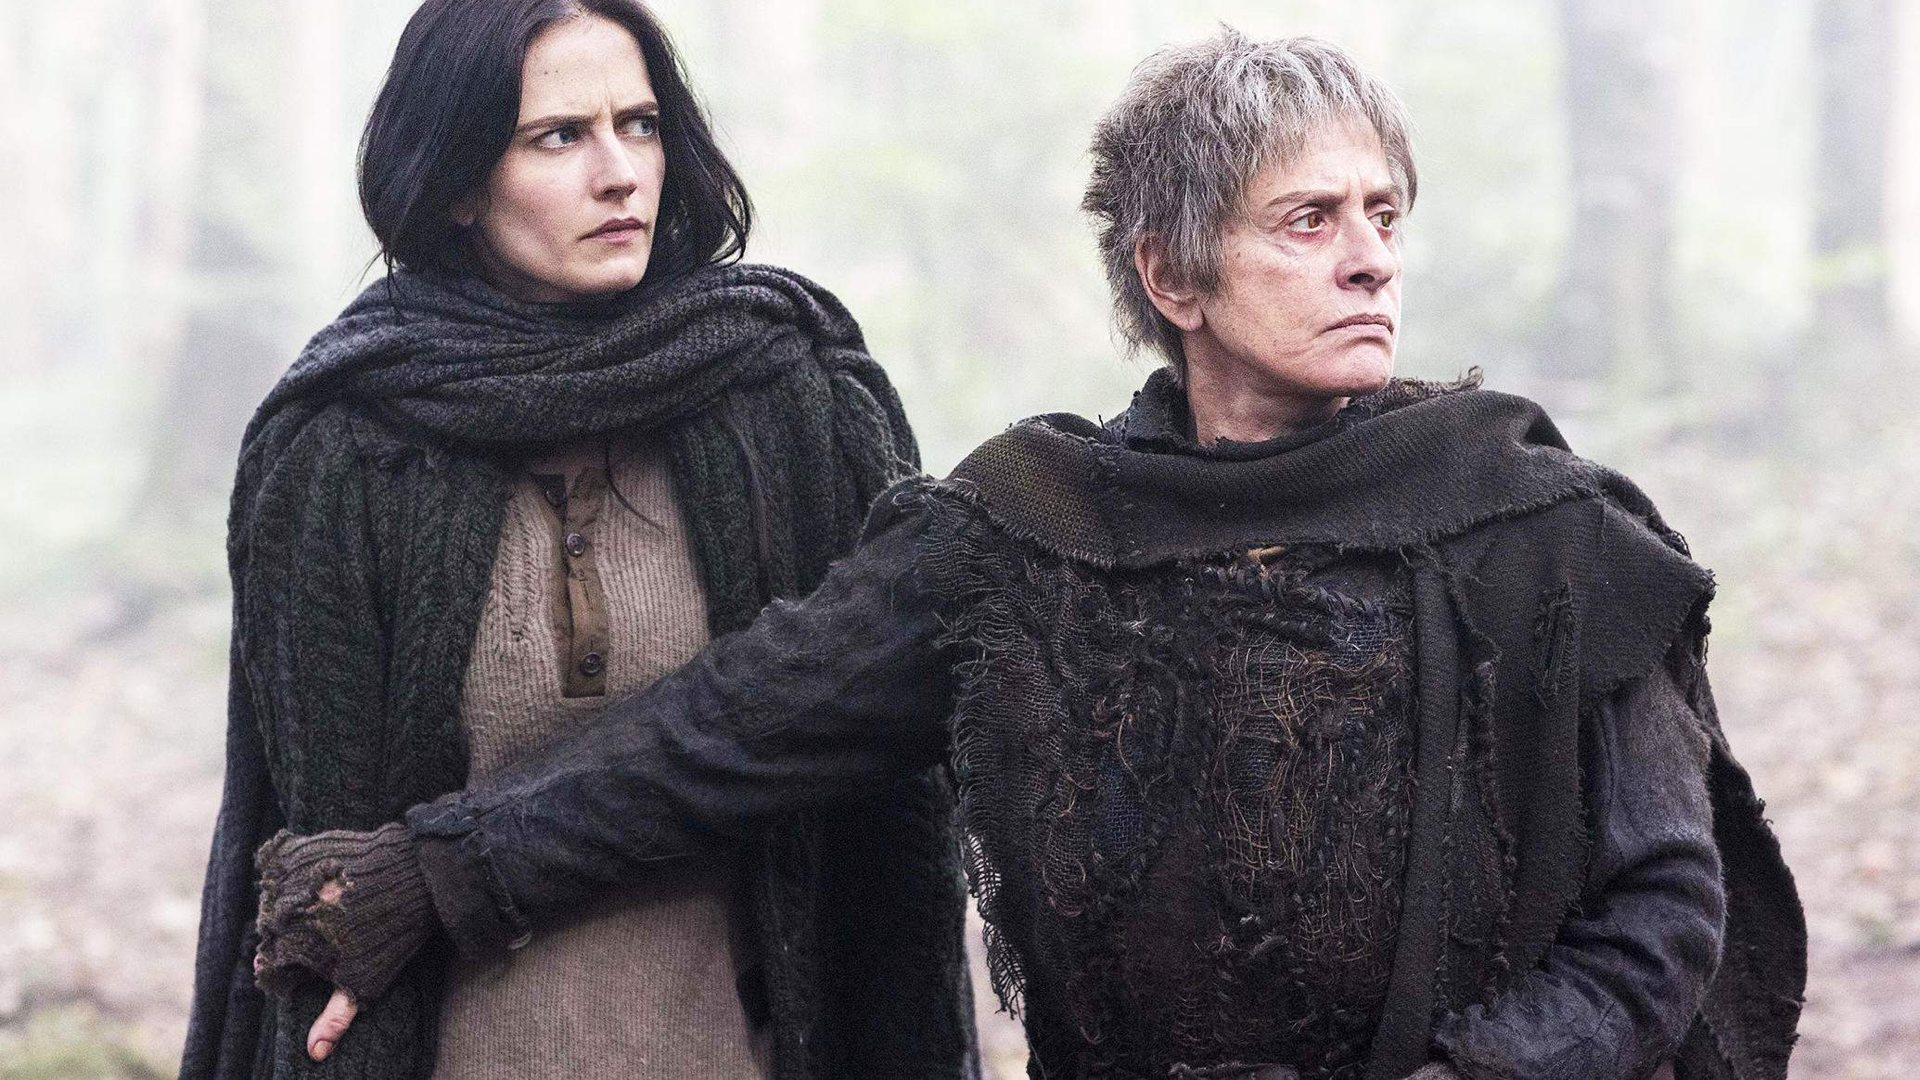 Penny Dreadful S02E03 - The Nightcomers [RECAP]